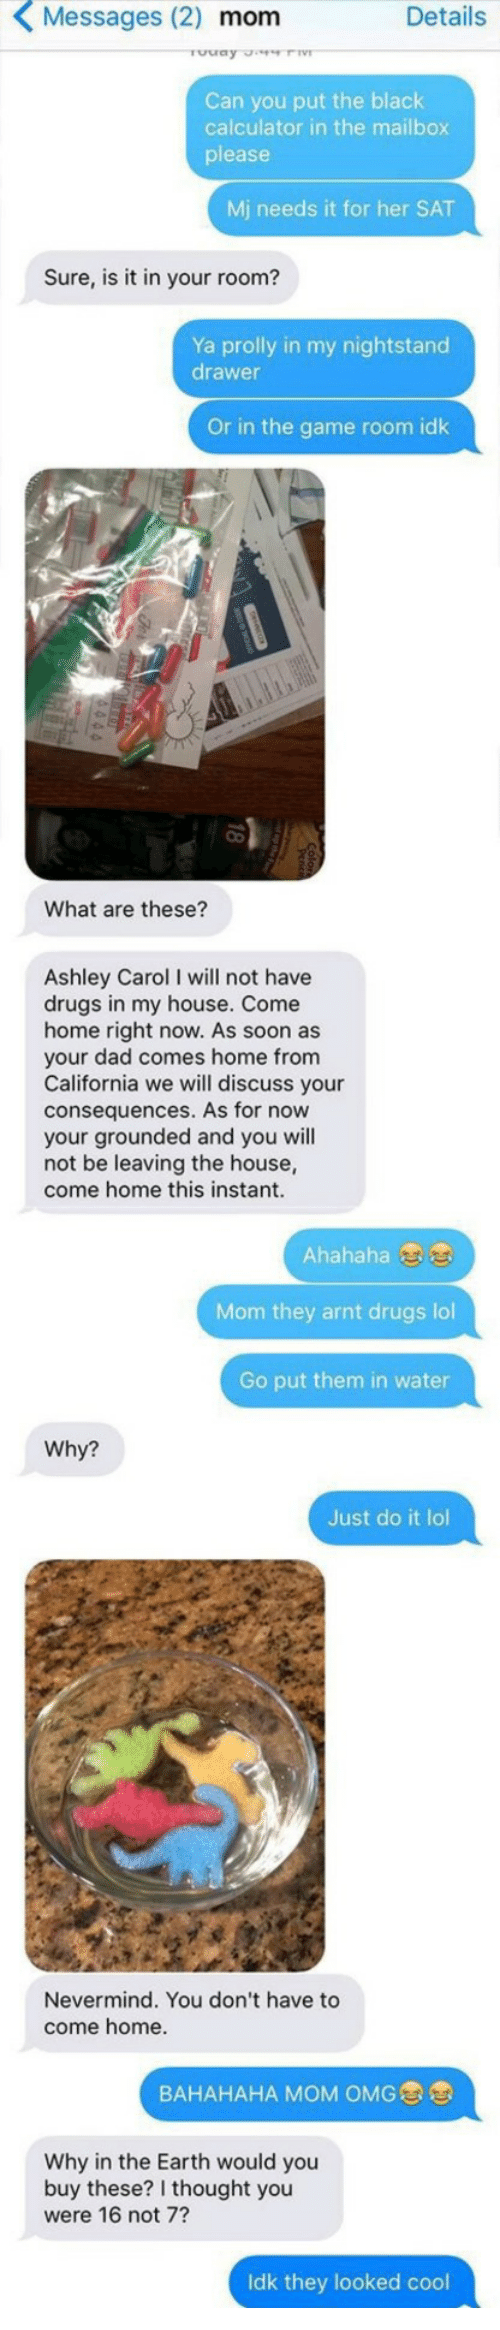 Dad, Drugs, and Just Do It: Messages (2) mom  Details  Can you put the black  calculator in the mailbox  please  Mj needs it for her SAT  Sure, is it in your room?  Ya prolly in my nightstand  drawer  Or in the game room idk  What are these?  Ashley Carol I will not have  drugs in my house. Come  home right now. As soon as  your dad comes home from  California we will discuss your  consequences. As for now  your grounded and you will  not be leaving the house,  come home this instant.  Ahahaha  Mom they arnt drugs lol  Go put them in water  Why?  Just do it lol  Nevermind. You don't have to  come home.  BAHAHAHA MOM OMG  Why in the Earth would you  buy these? I thought you  were 16 not 7?  k they looked cool